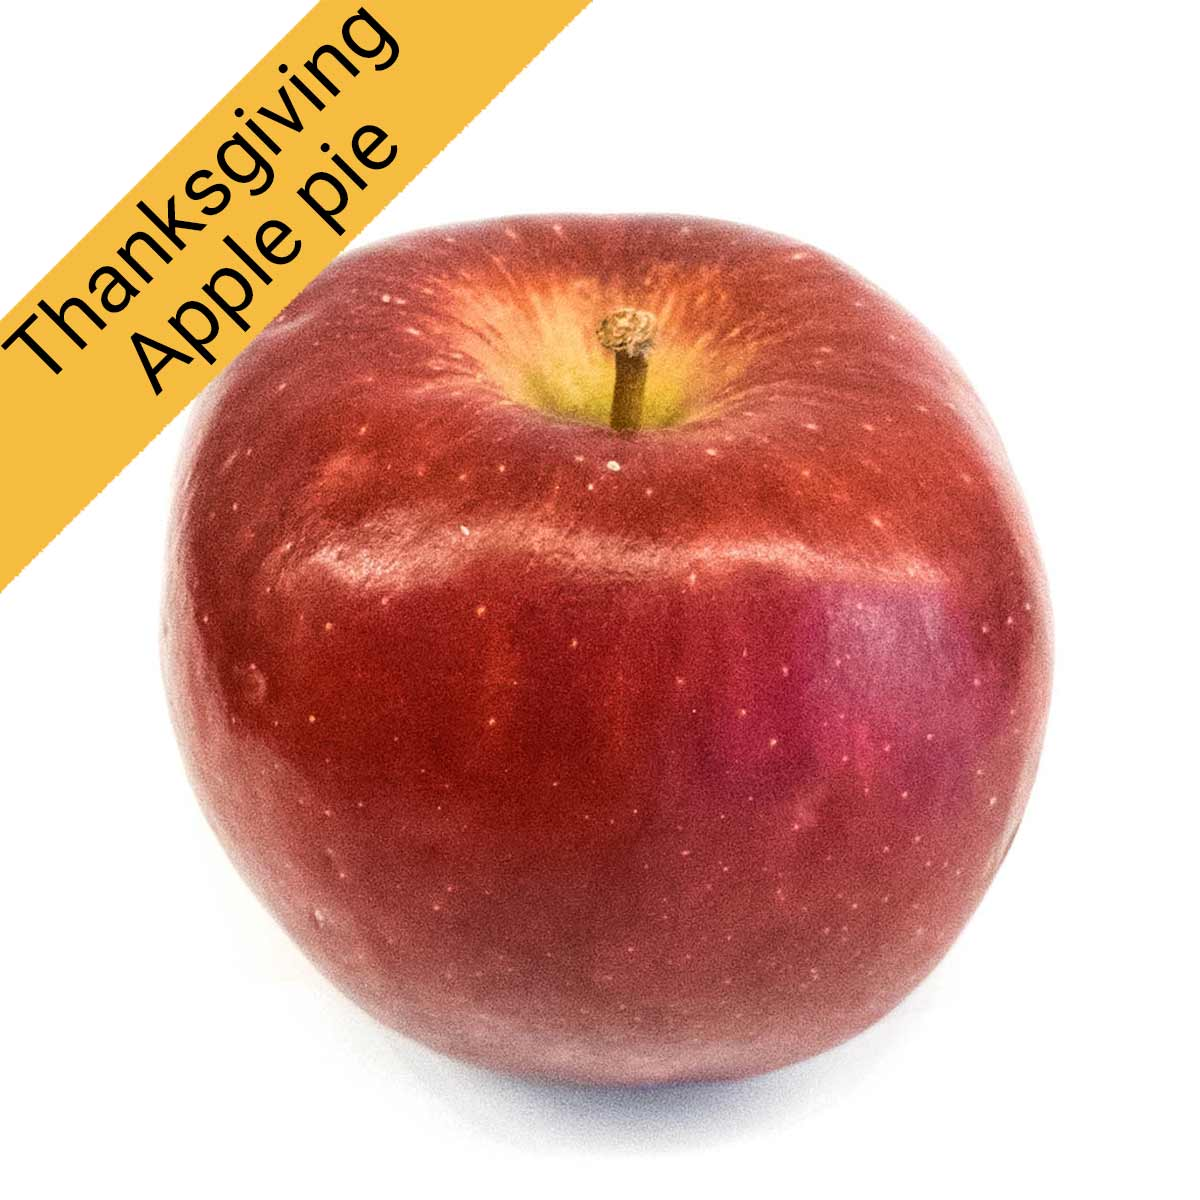 Braeburn: best apple for thanksgiving pie because it is a late-season apple